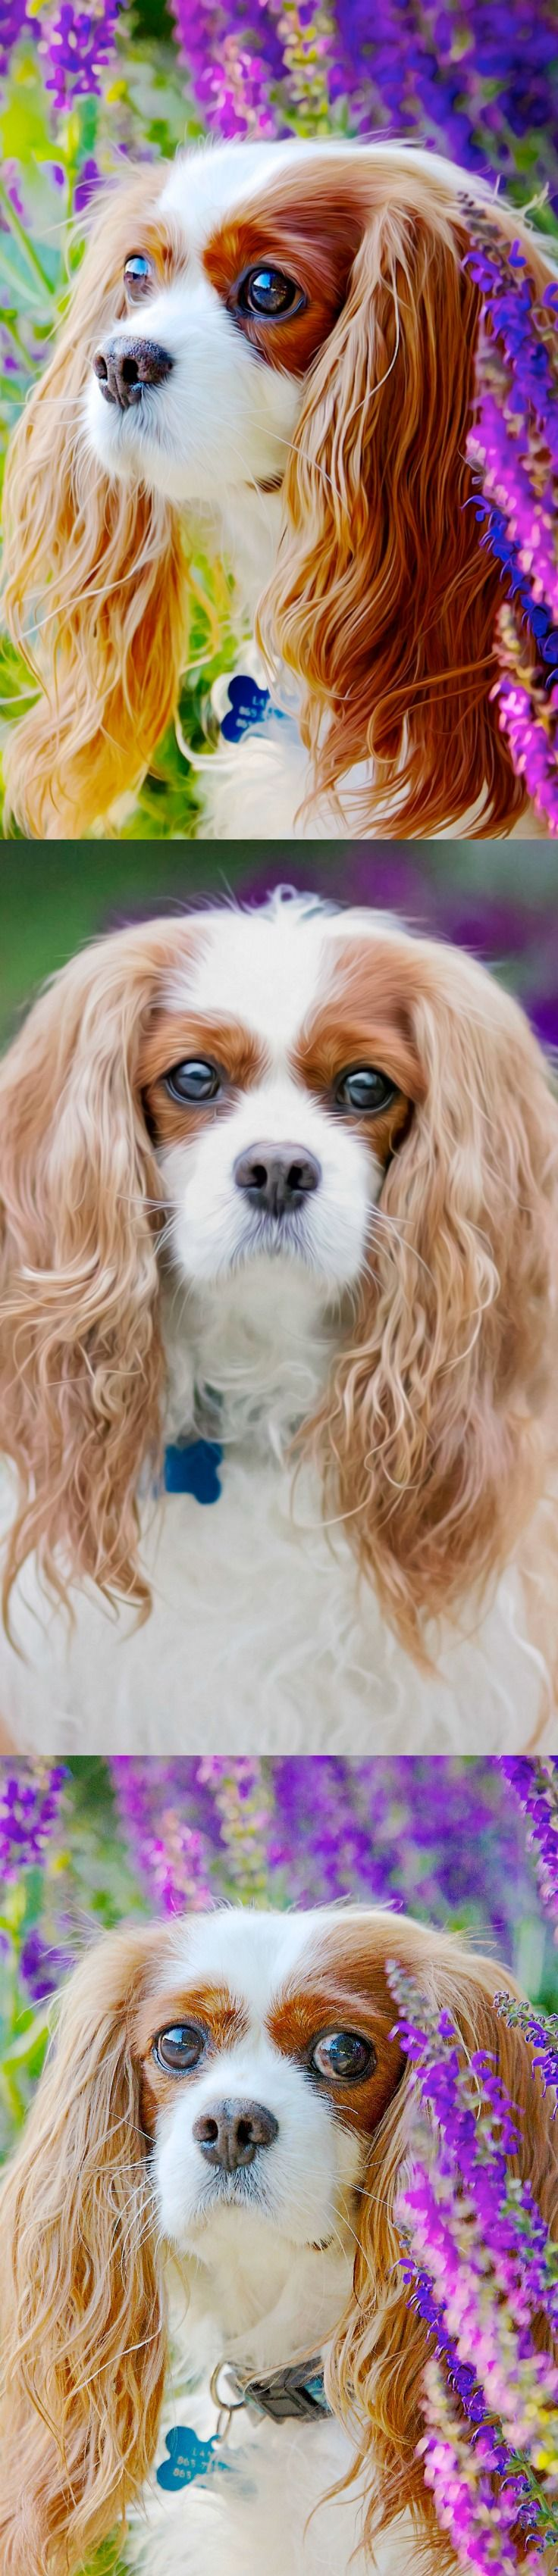 637 best cavalier king charles spaniel images on pinterest dog landon blenheim cavalier king charles spaniel by leanne newman nvjuhfo Choice Image